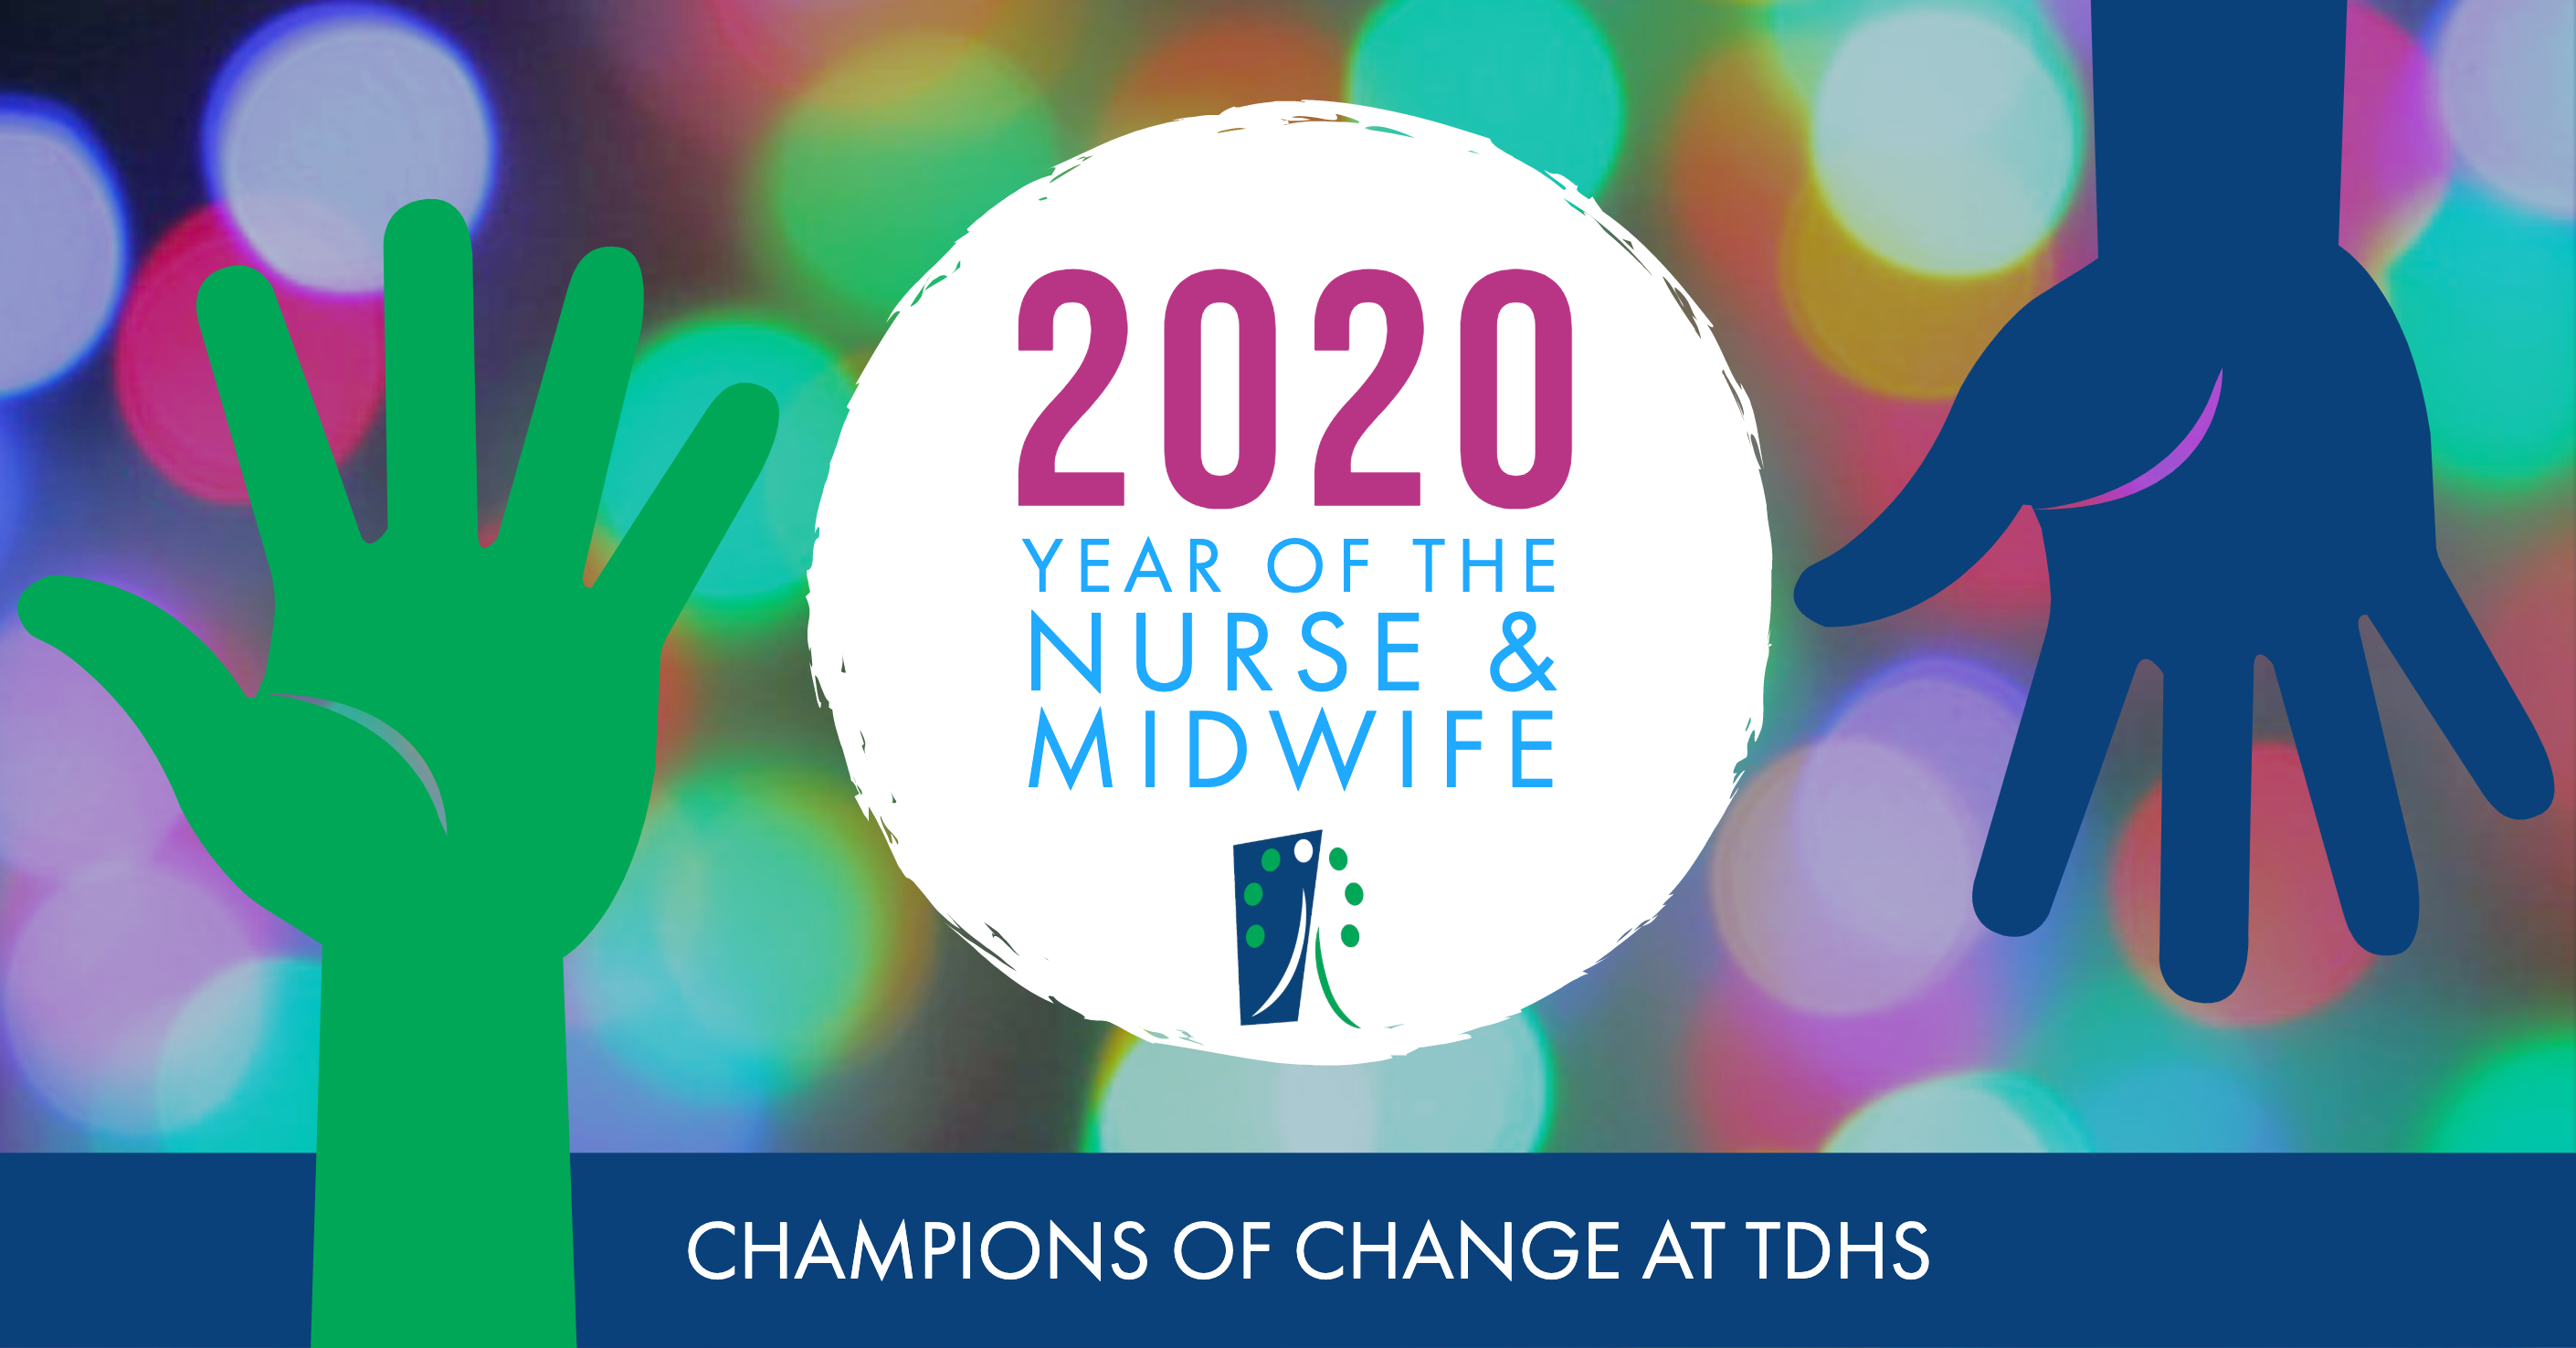 TDHS 2020 Year of the Nurse and Midwife